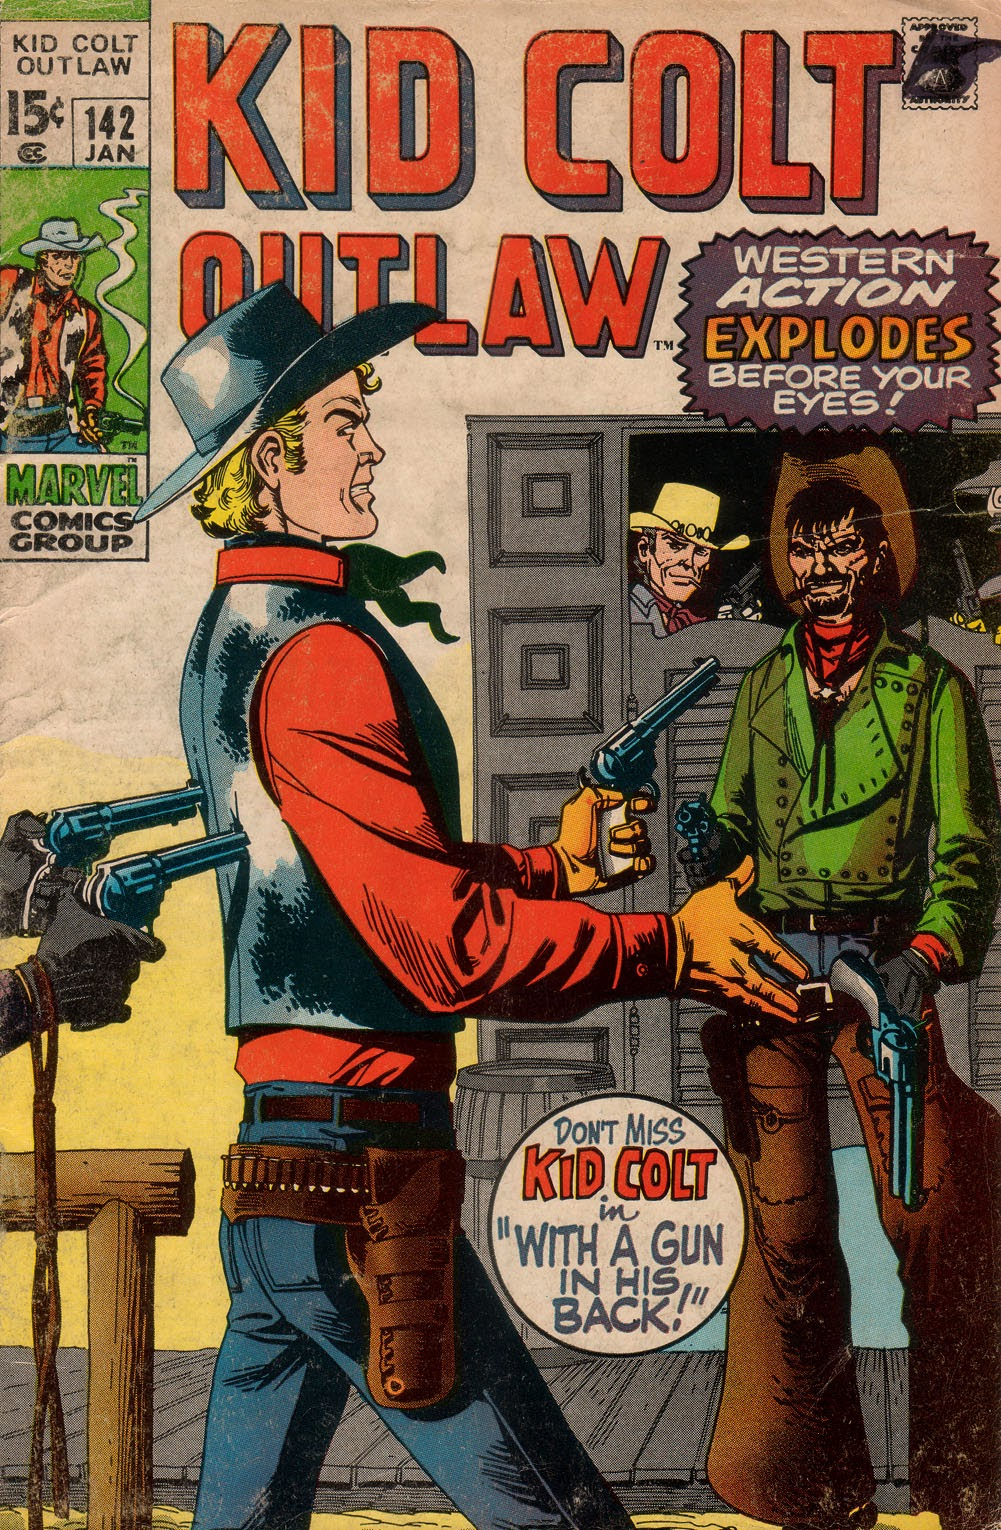 Kid Colt Outlaw issue 142 - Page 1